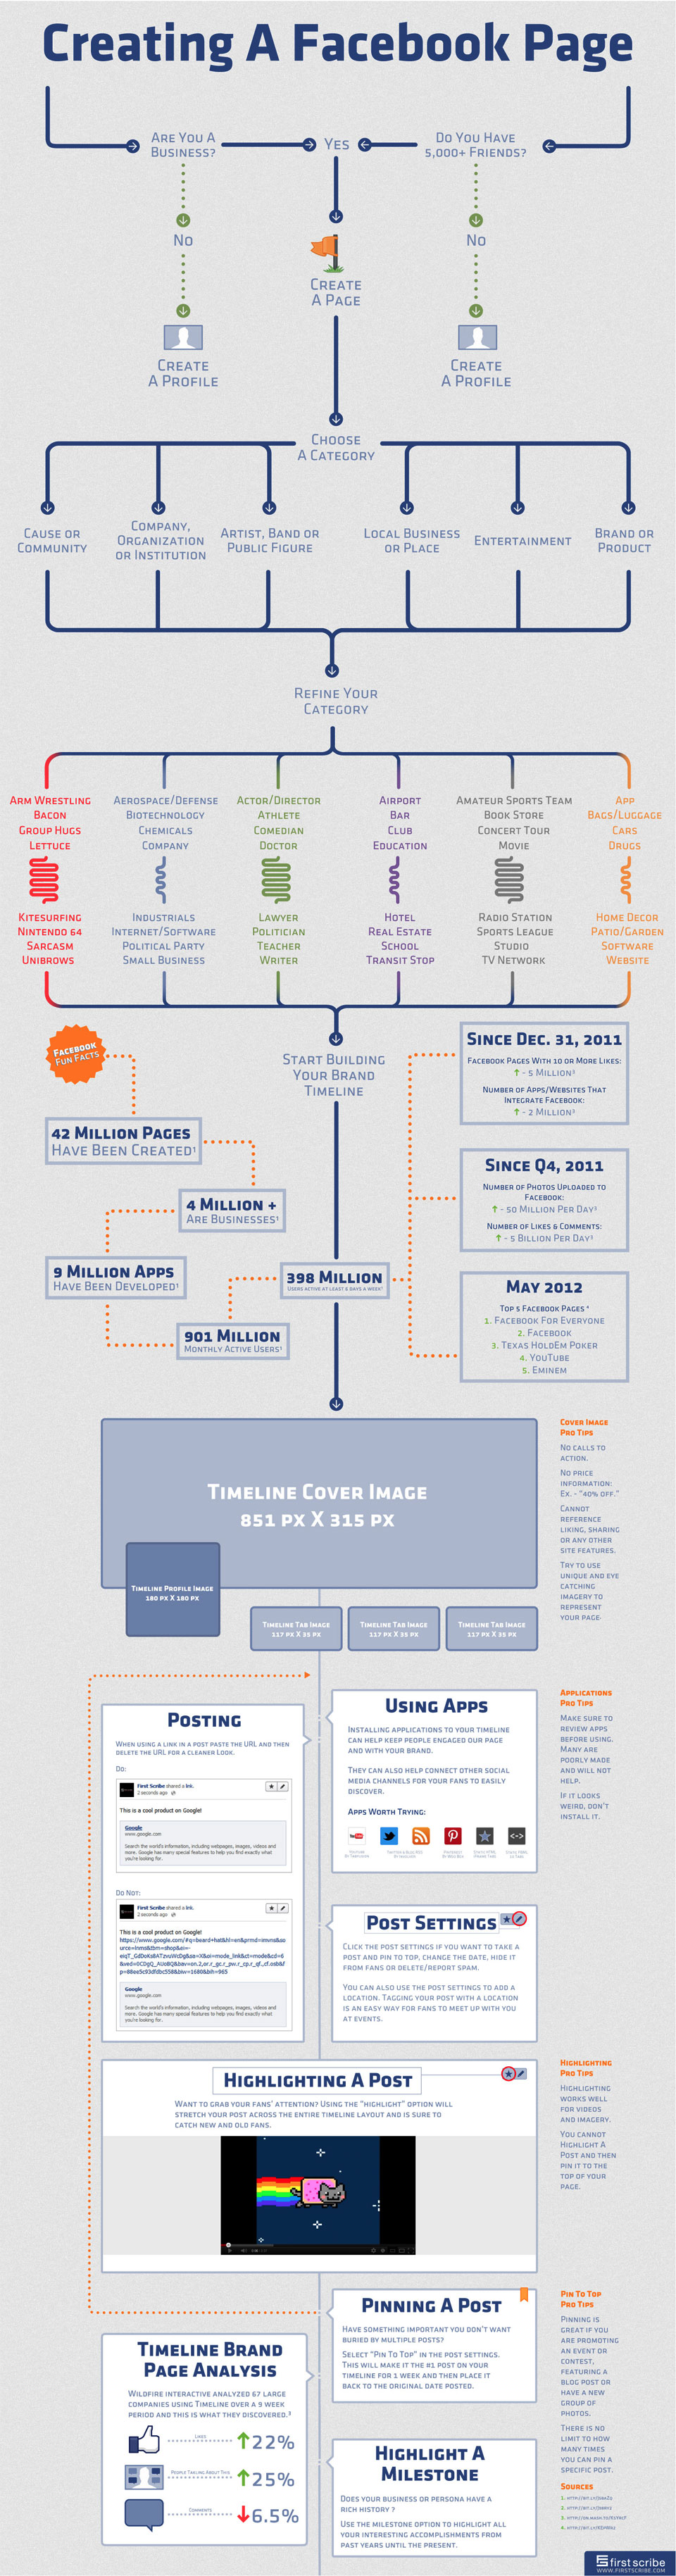 how-to-create-facebook-page-infographic.jpg